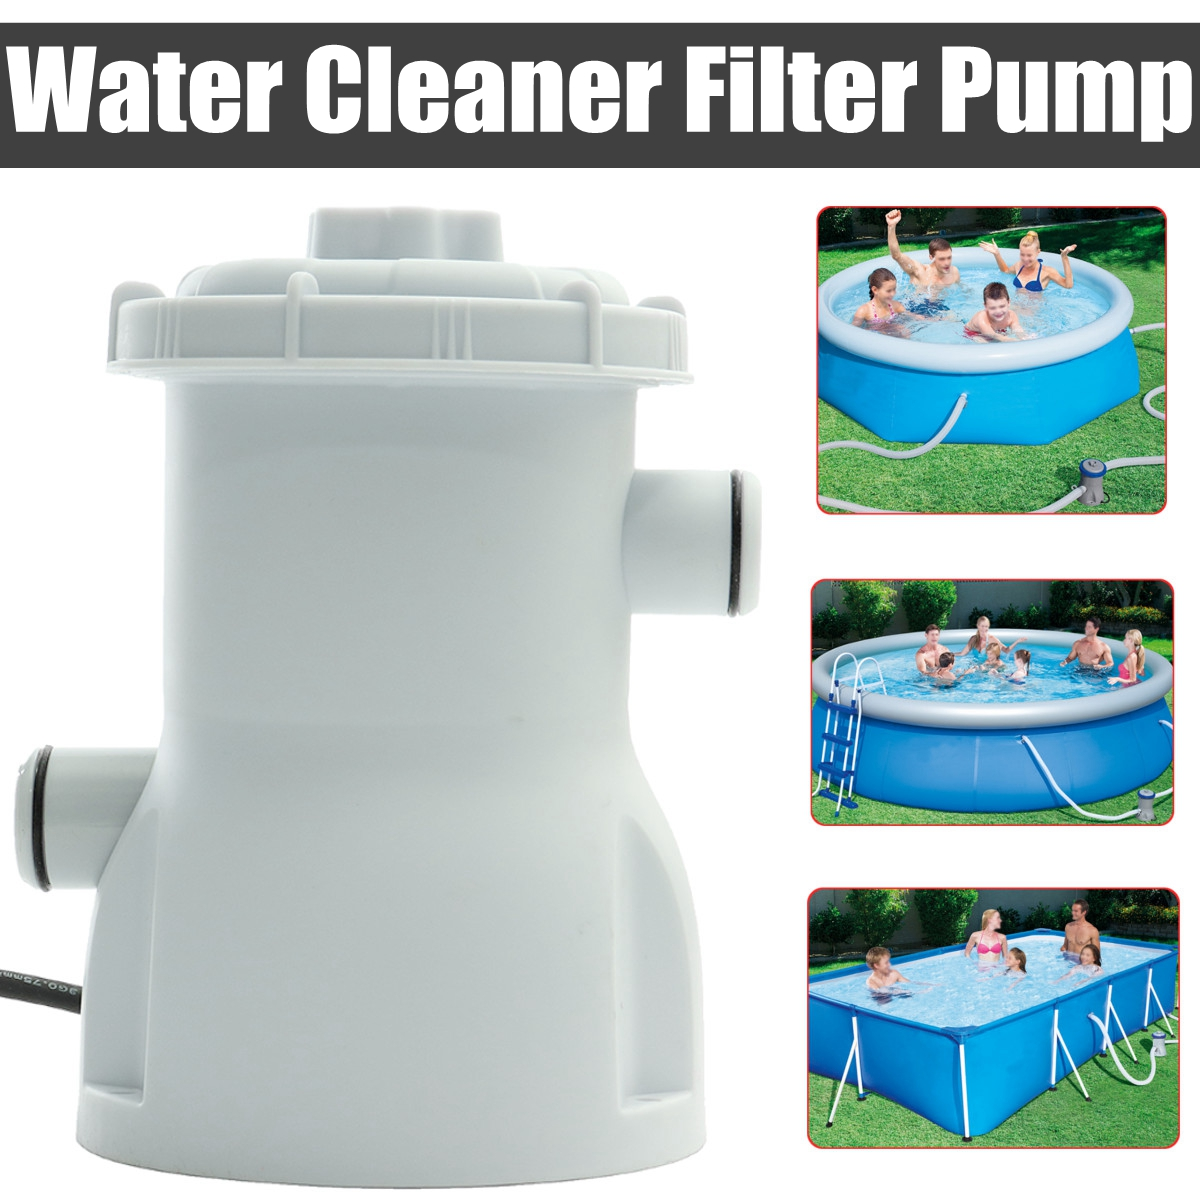 220V Electric Filter Pump Swimming Pool Filter Pump Water Clean Clear Dirty Pool Pond Pumps